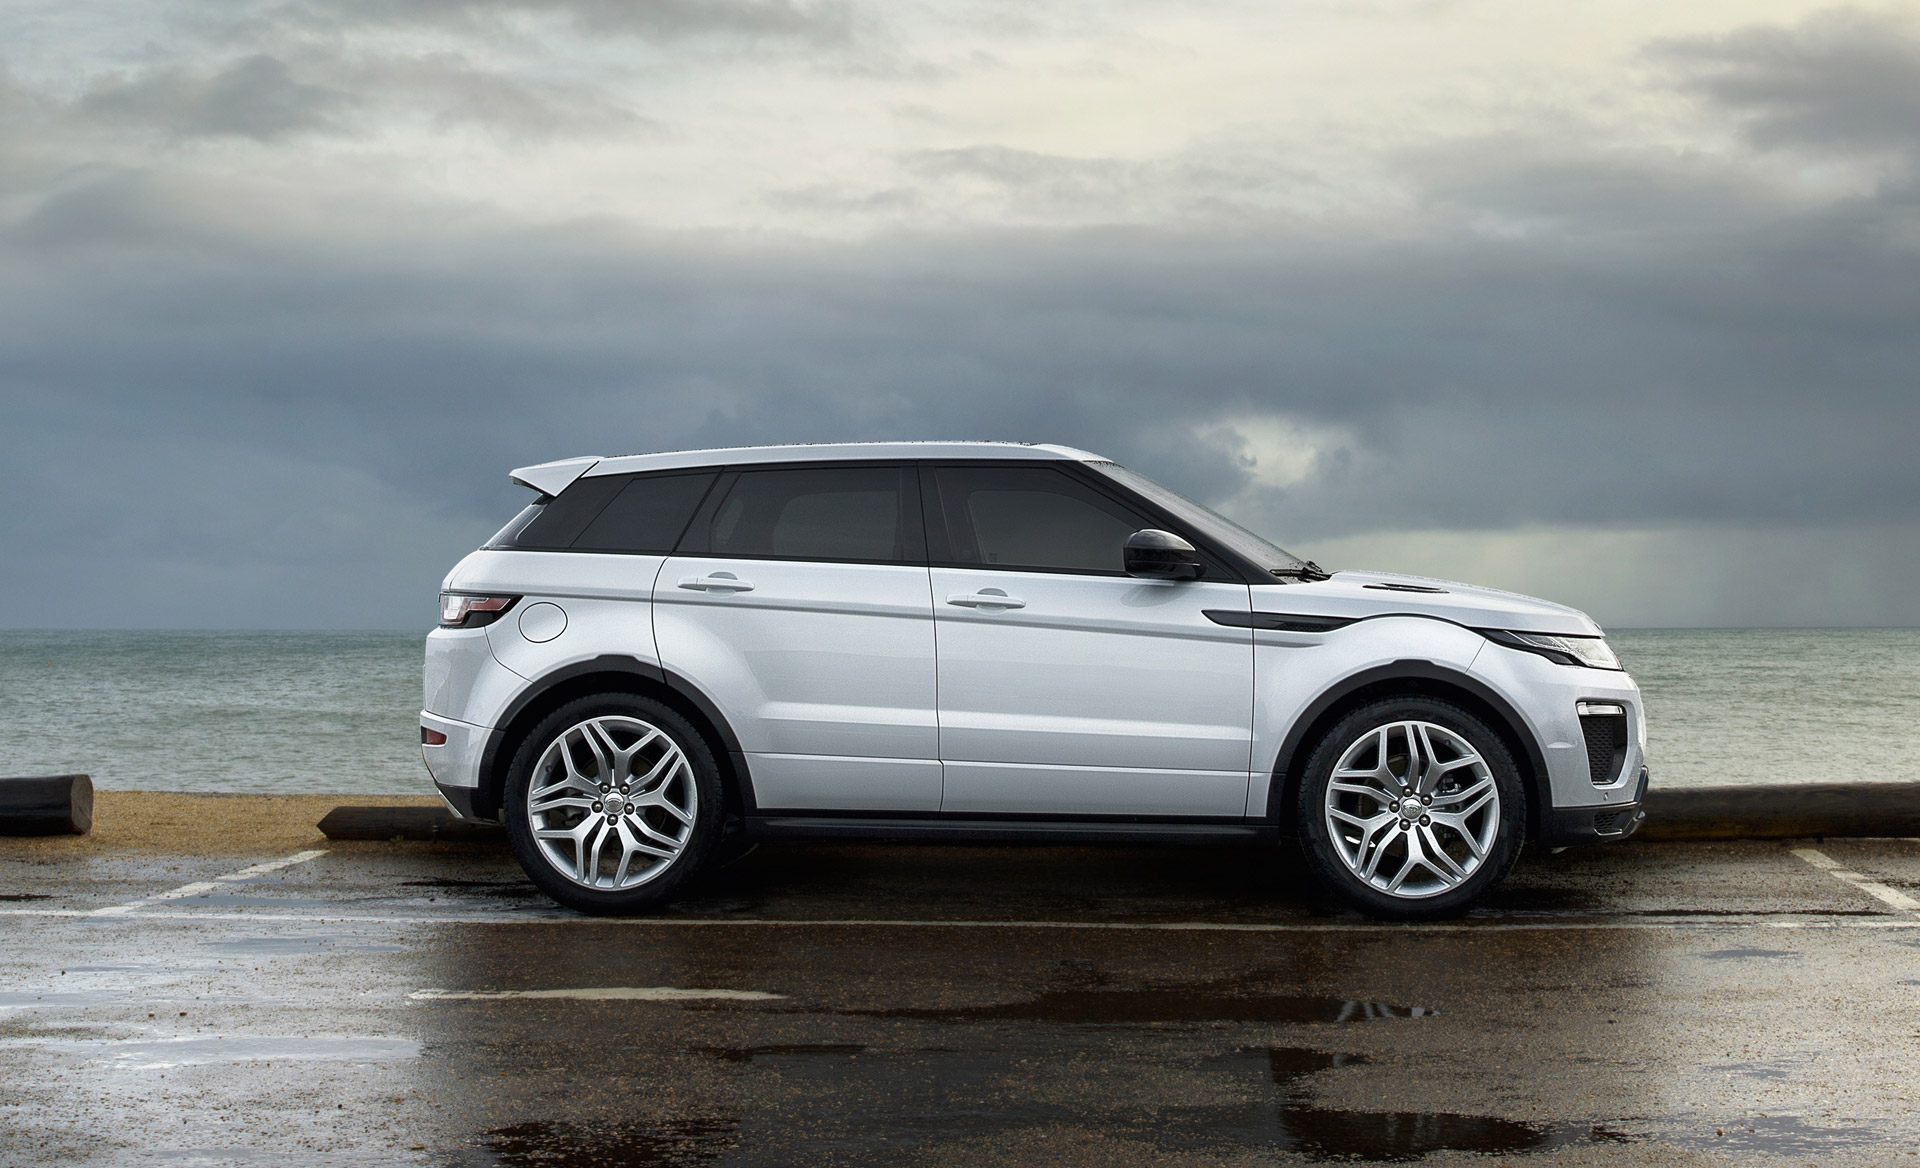 used land rover range rover evoque for sale in baltimore. Black Bedroom Furniture Sets. Home Design Ideas